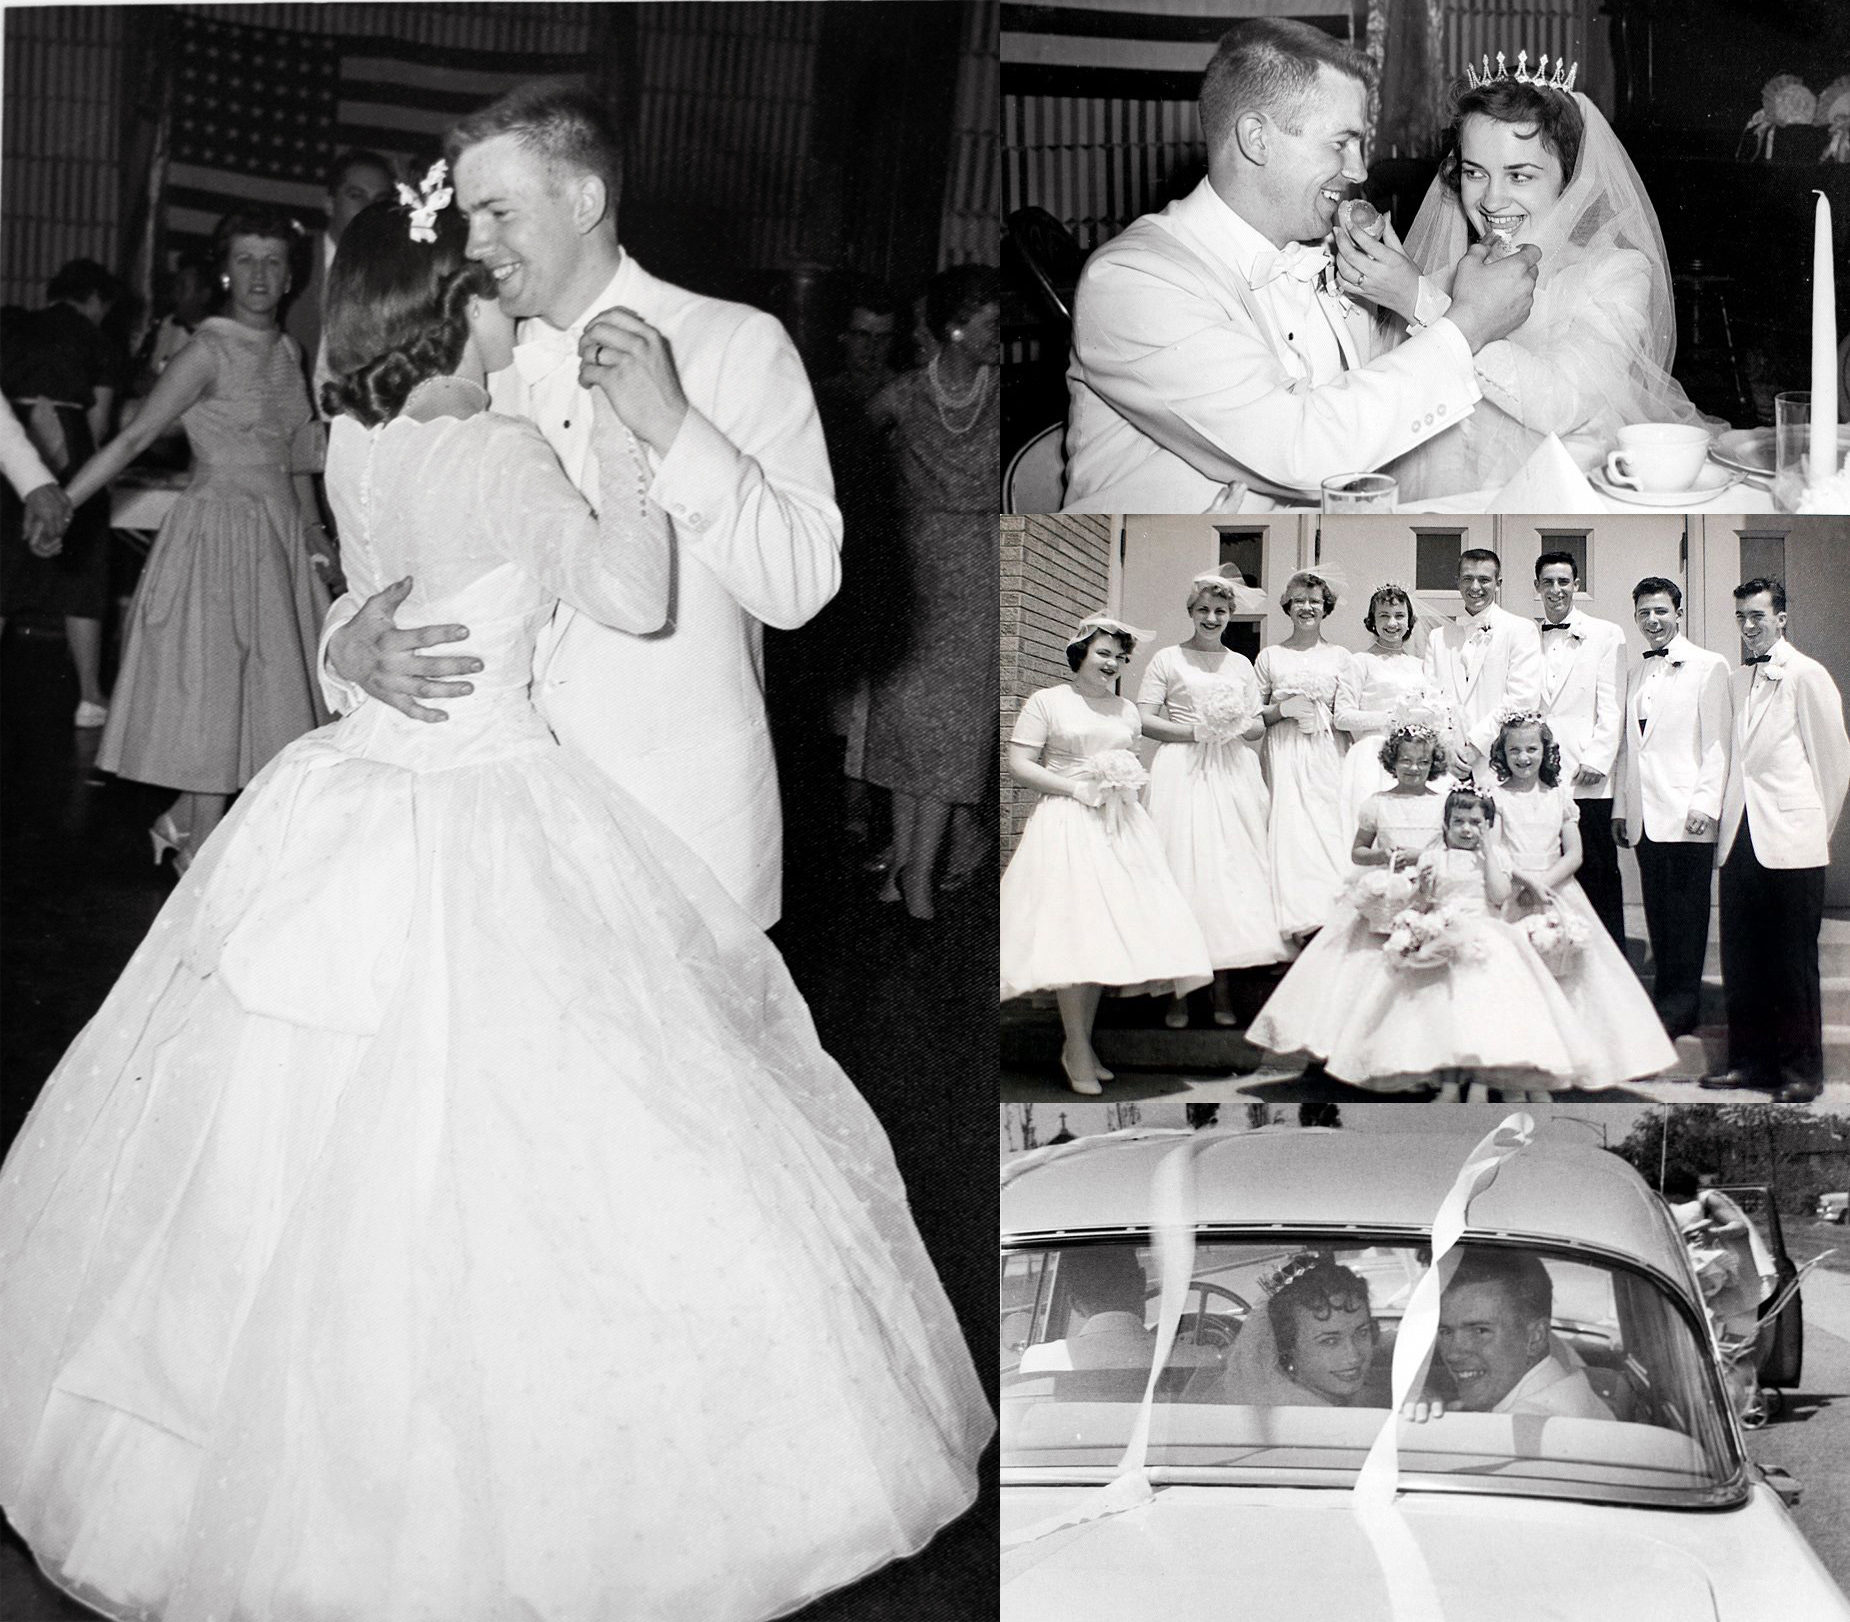 Rosalie and Arthur's wedding day - May 17, 1958 - Our Lady Gate of Heaven church, south side of Chicago.